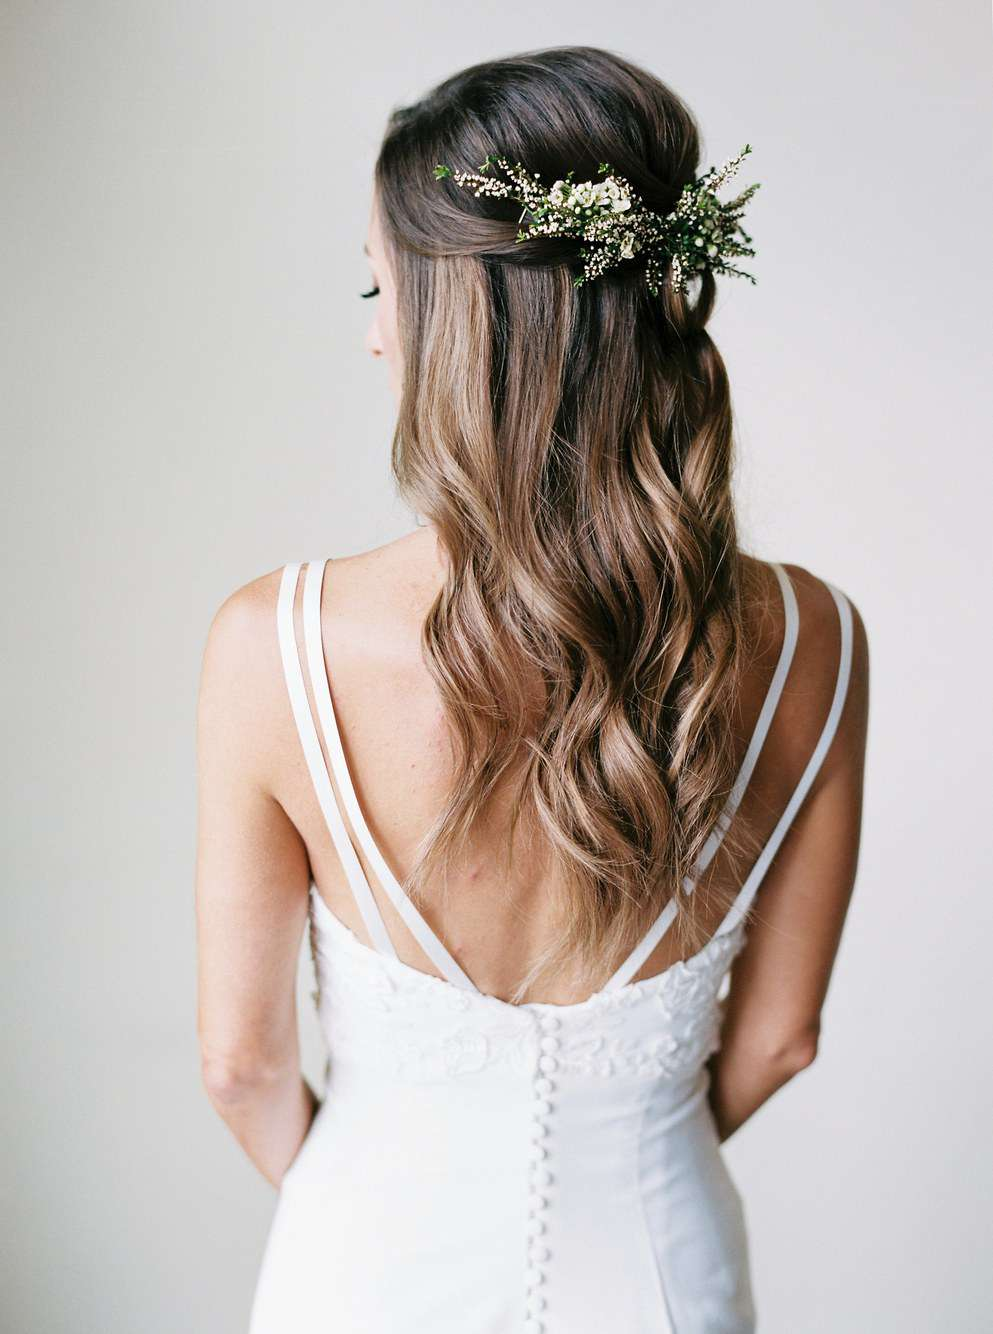 Half up half down Bridal hairstyle with flowers